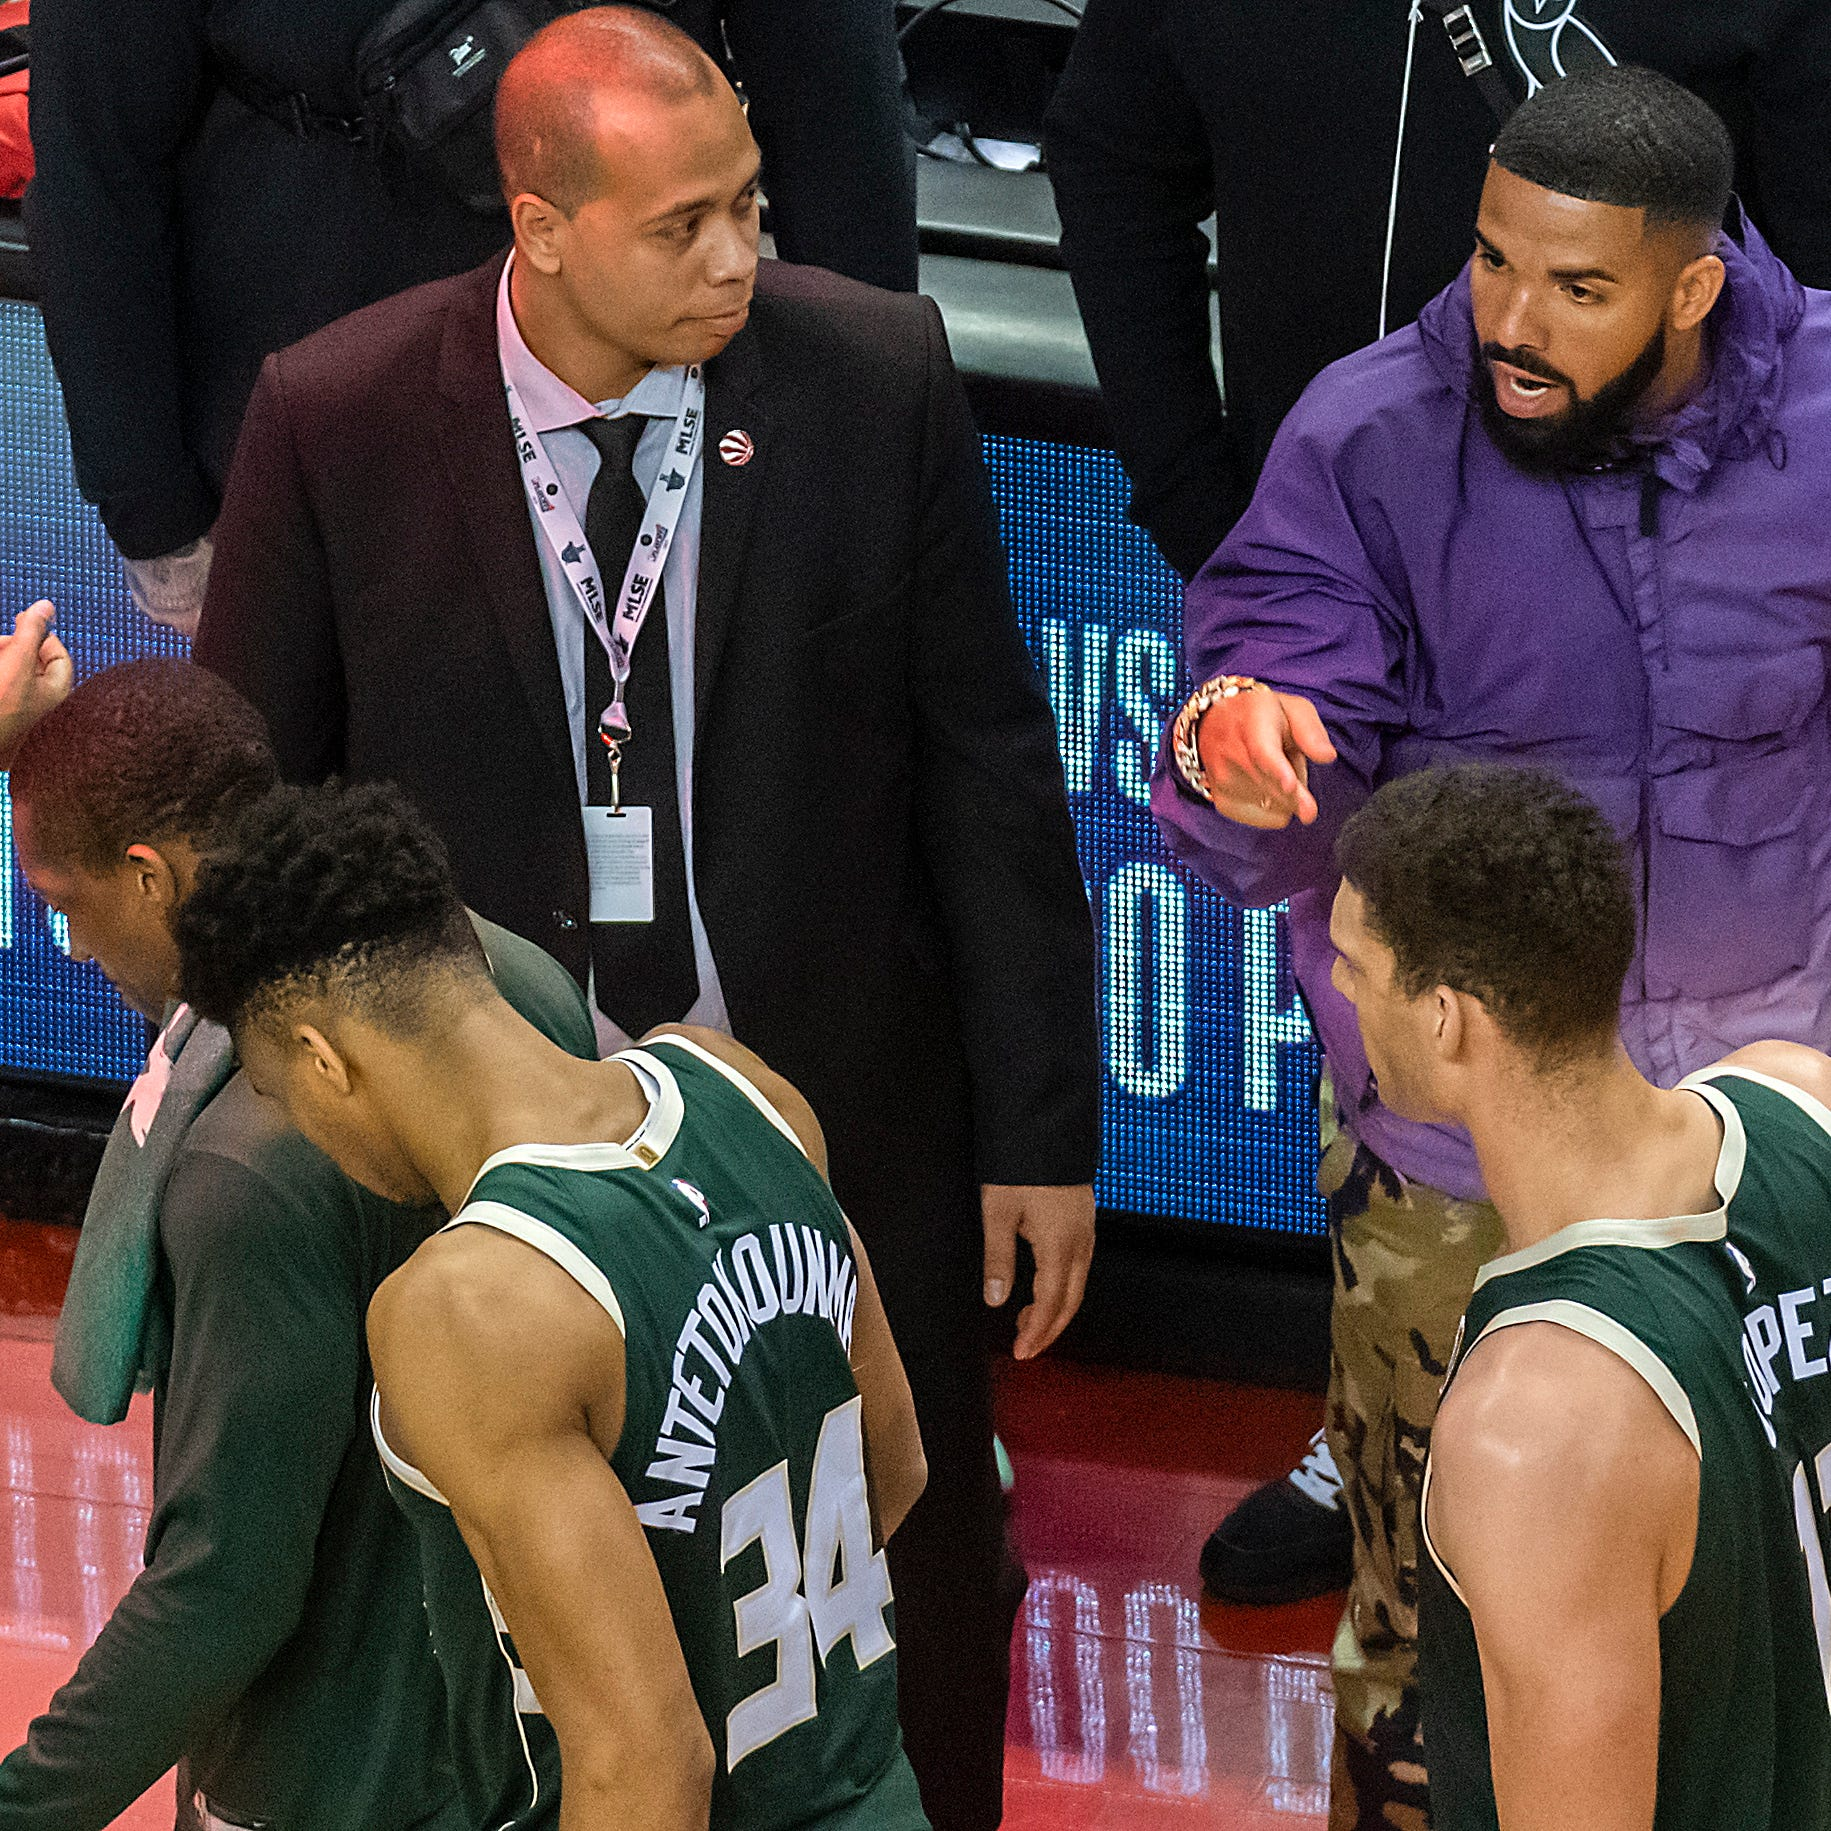 Bucks coach Budenholzer weighs in on Drake brouhaha